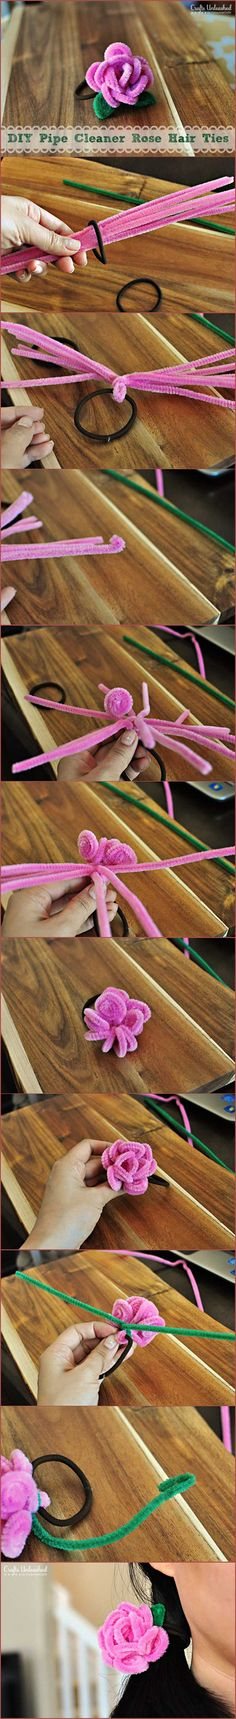 DIY Pipe Cleaner Rose Hair Ties